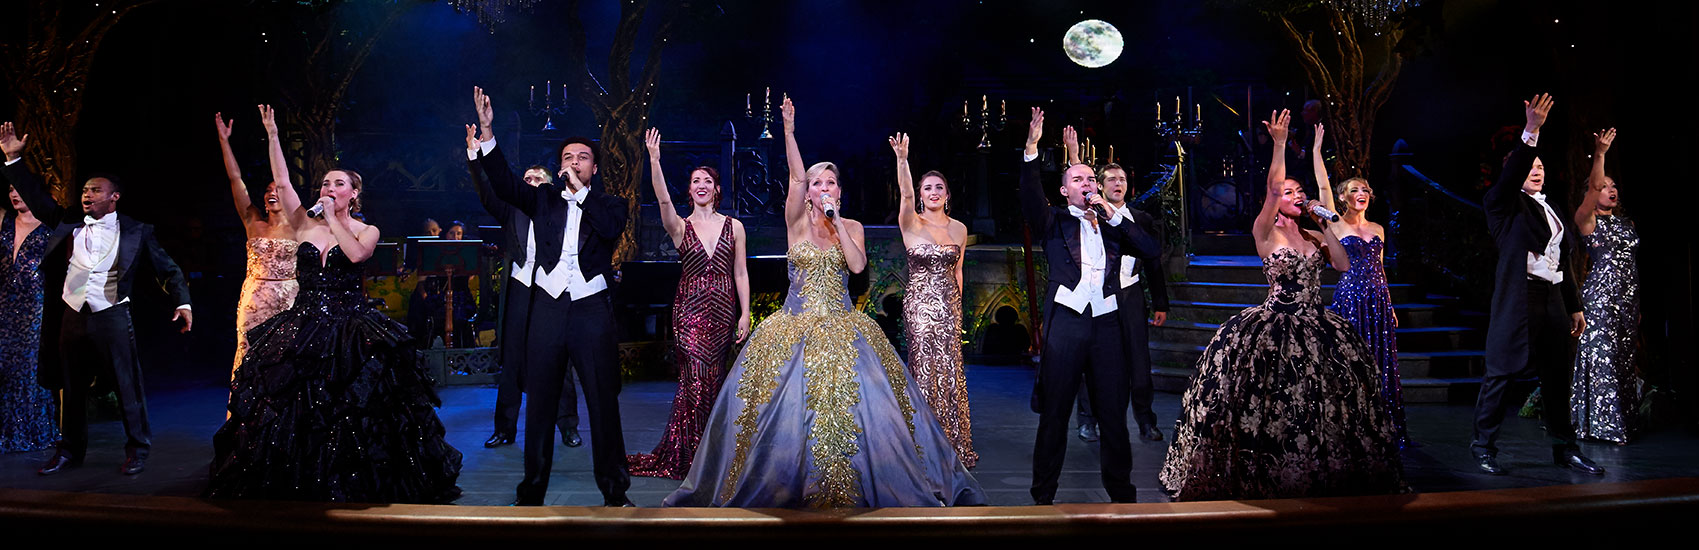 World-Class Entertainment with Princess Cruises 3